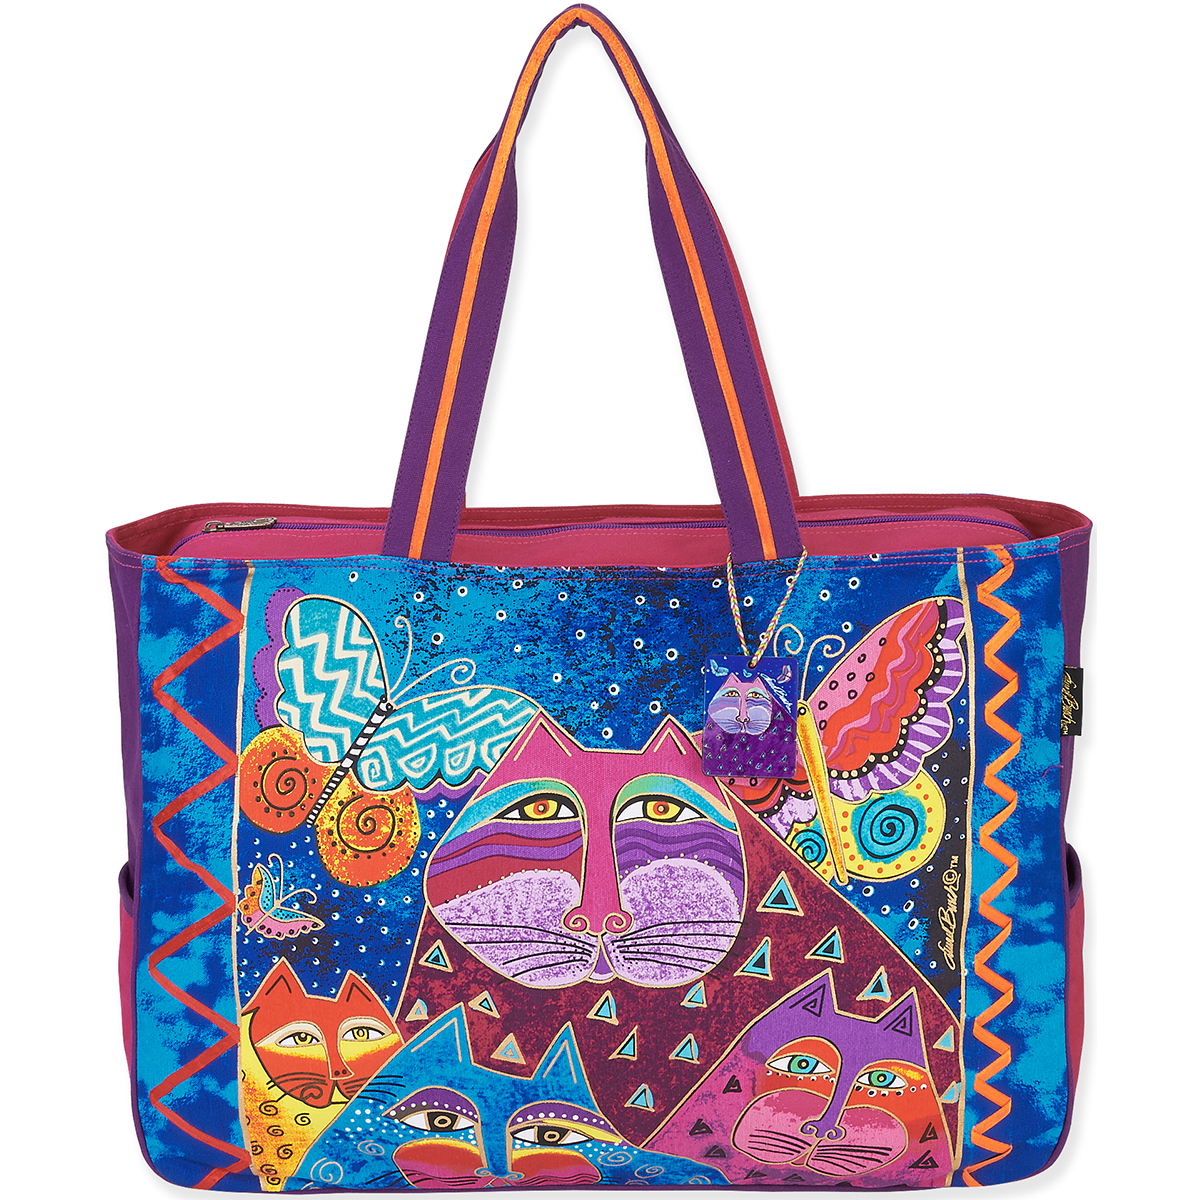 Laurel Burch Tote- Medium Tote 15\u0022X4\u0022X10\u0022 Cats With Butterflies